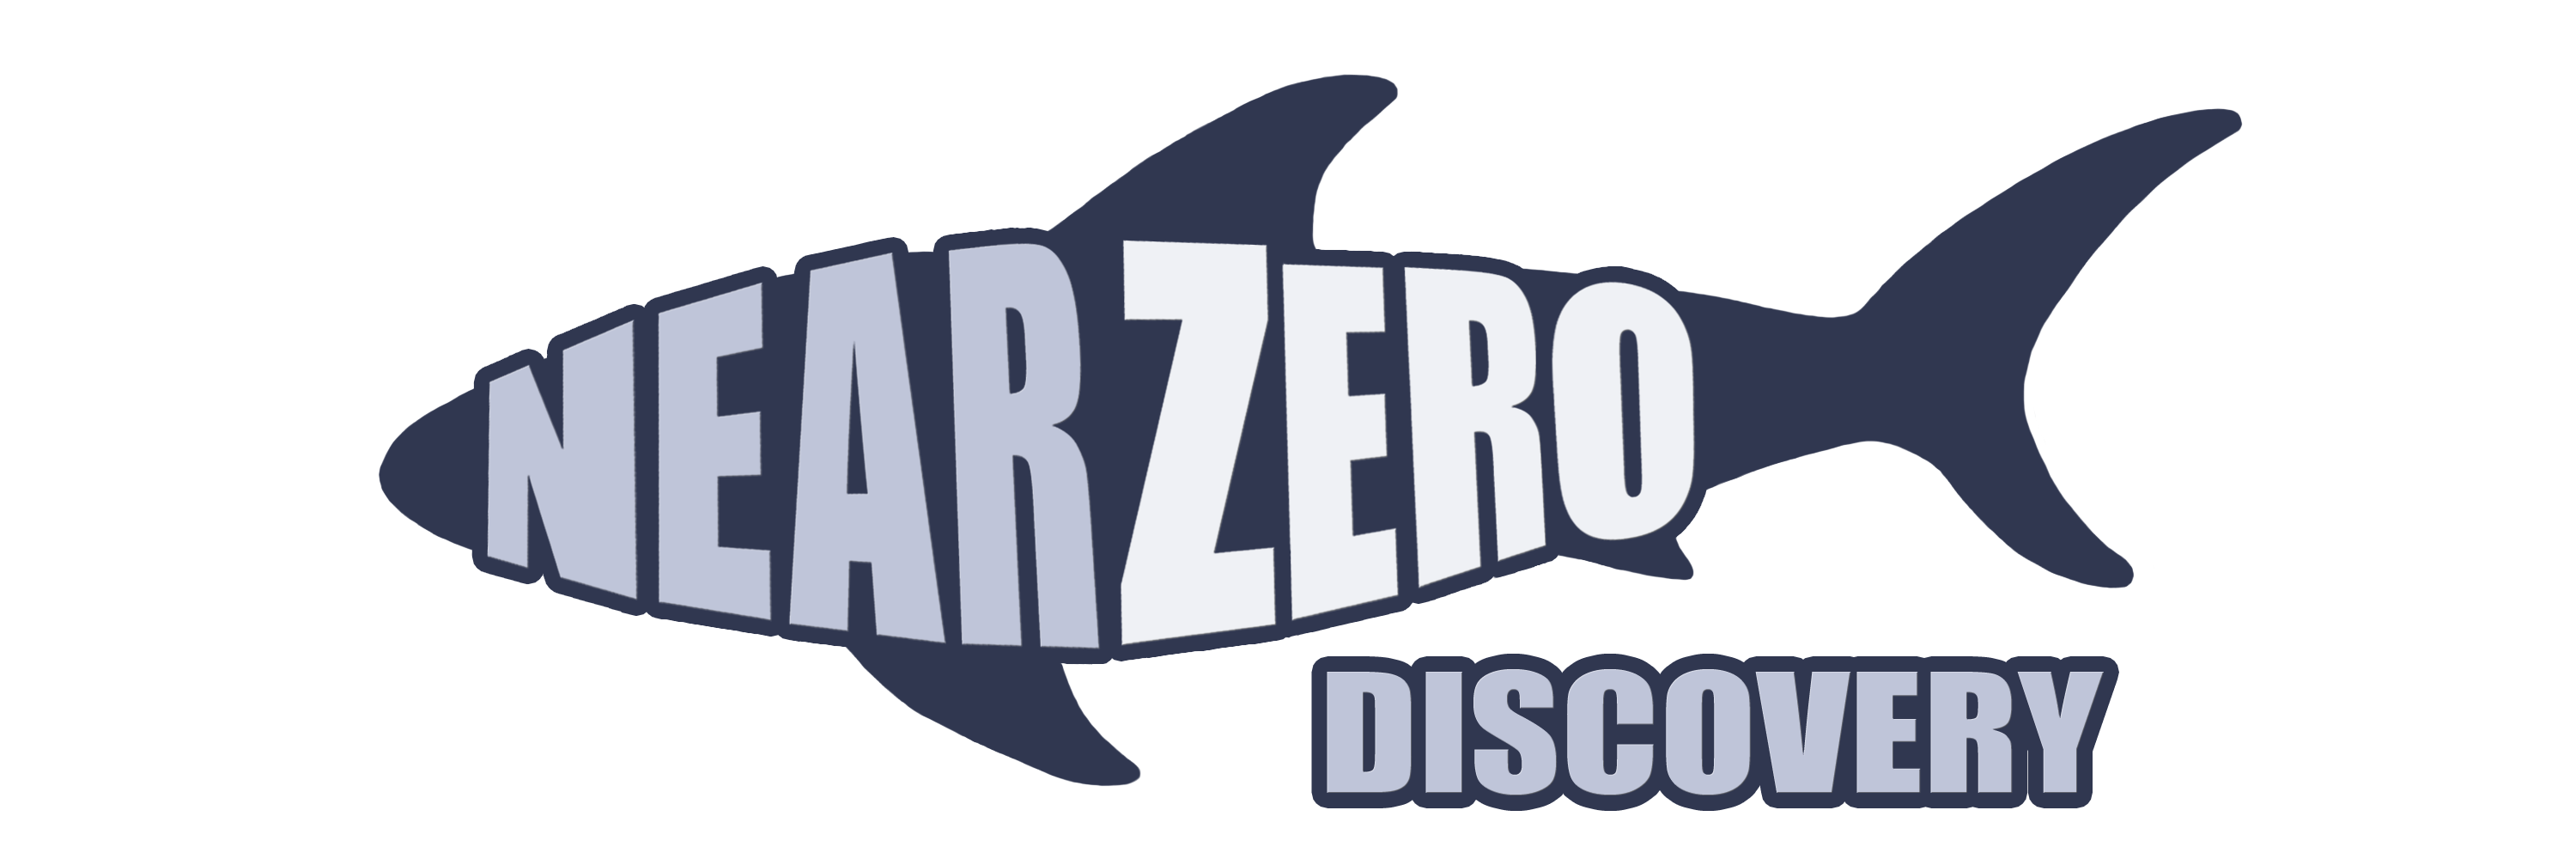 "Our NearZero Discovery logo - A shark with ""NearZero"" written across it and Discovery written underneath. The NearZero Discovery service offered by REW Computing includes full end-to-end eDiscovery services for Newmarket, Toronto, the GTA, and Ontario, Canada. ( near zero discovery or nearzerodiscovery )"